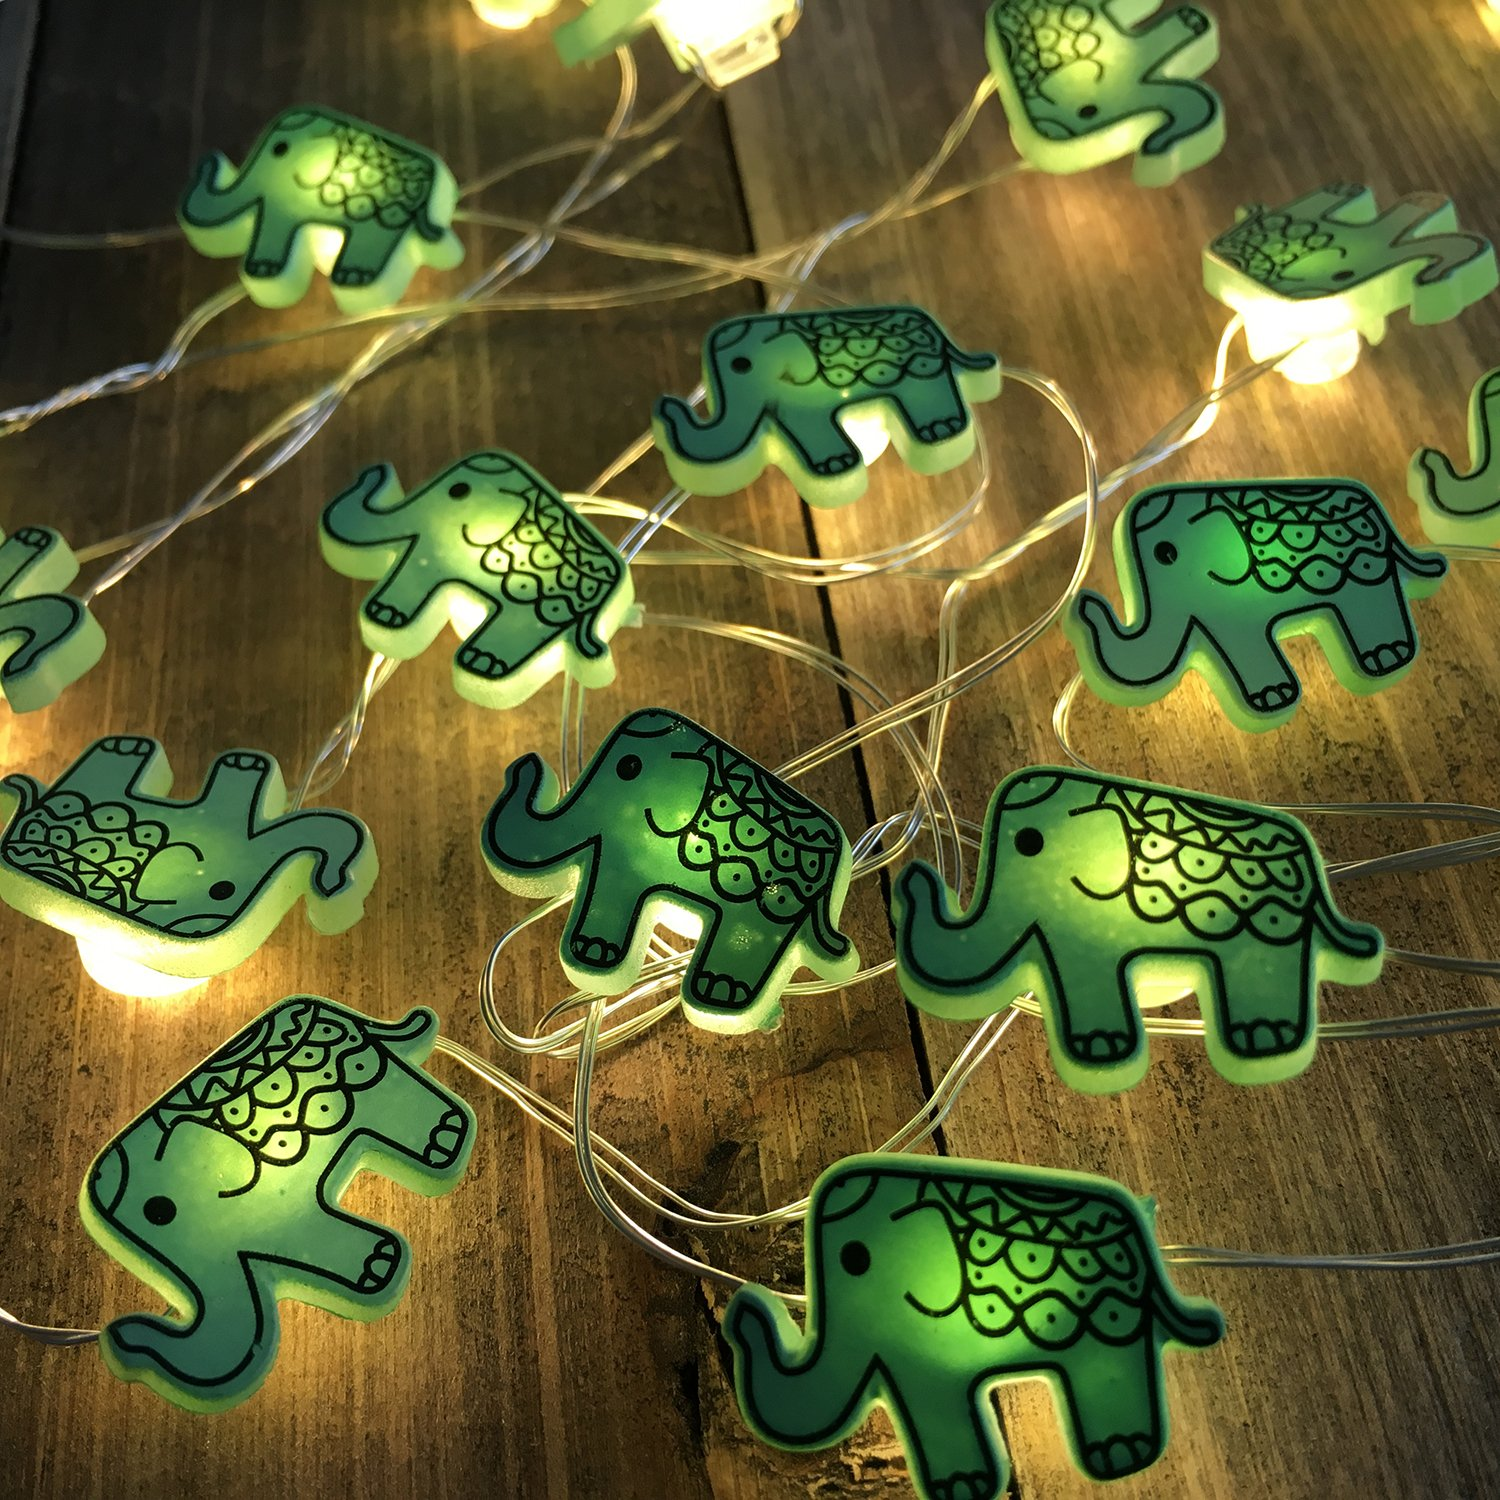 Animal Novelty Lights String Battery Operated with Timer Control 20 Micro LED Wire Lights Waterproof 2 Pack Elephant String Lights for Home Decoration,Kids Bedroom,Christmas,Holiday,(ELE2) by VagaryLight (Image #2)